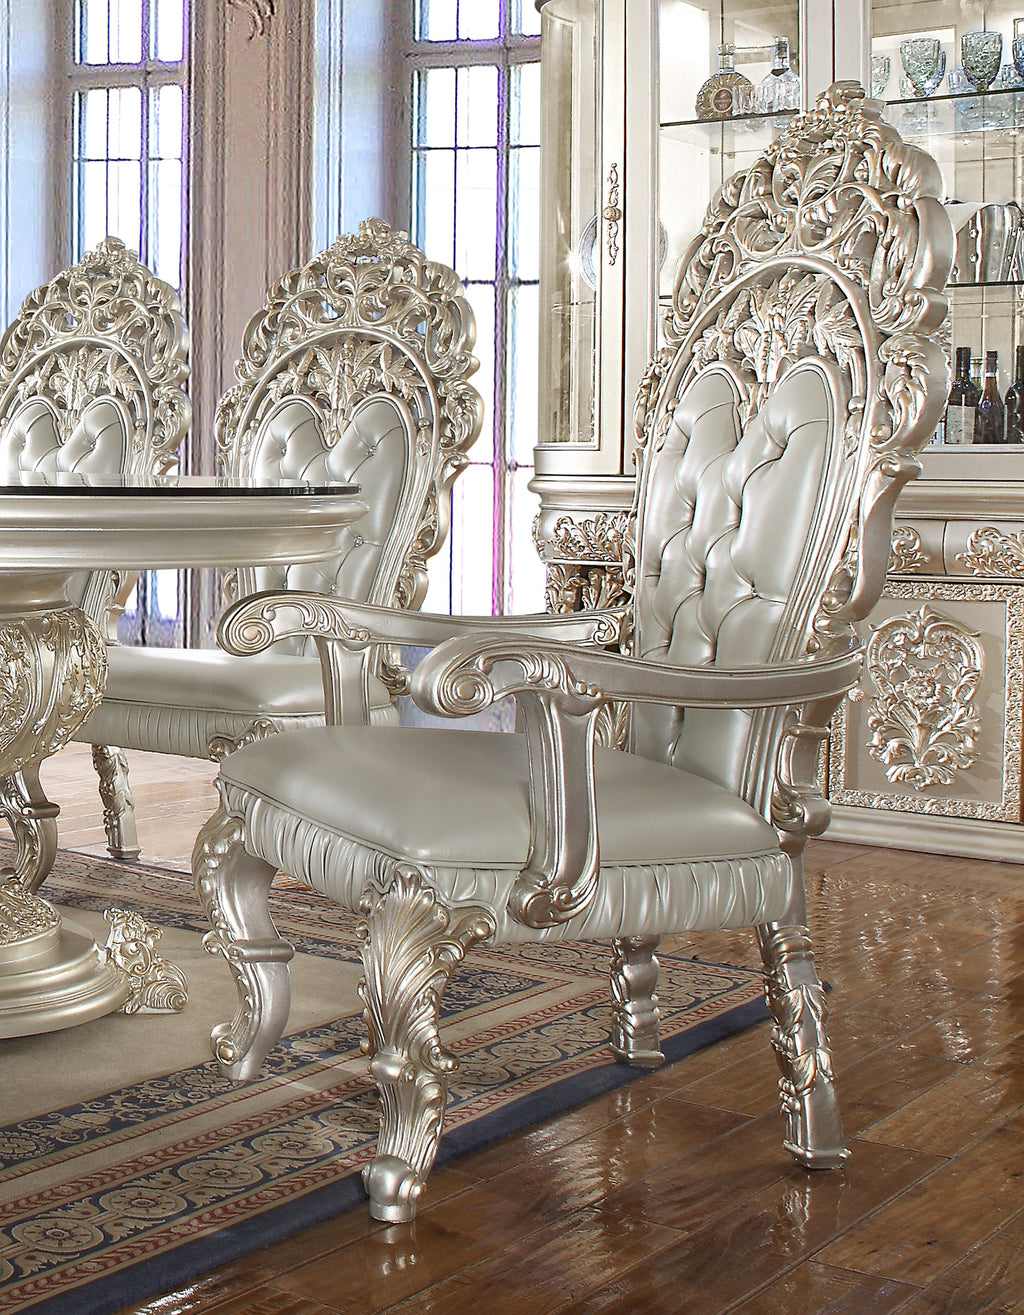 Leather Arm Chair in Metallic Silver Finish AC8088 European Traditional Victorian